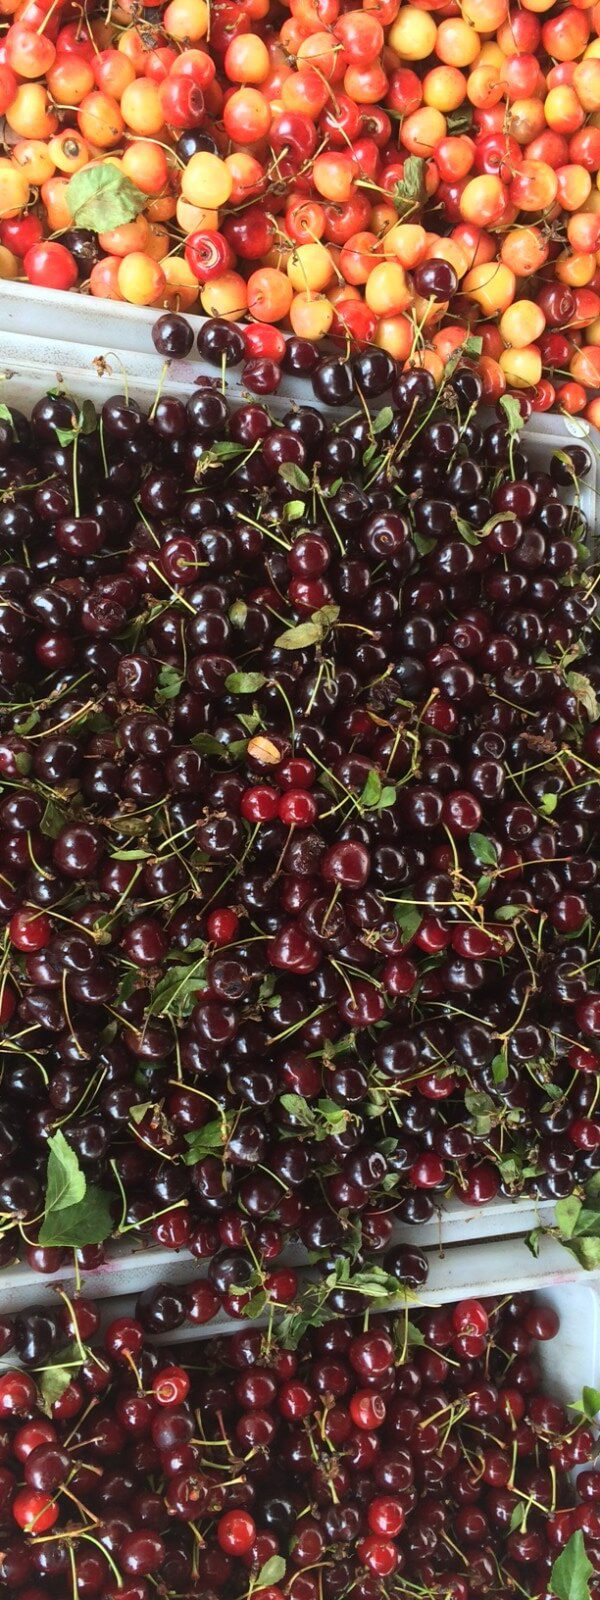 Sour and sweet cherries.